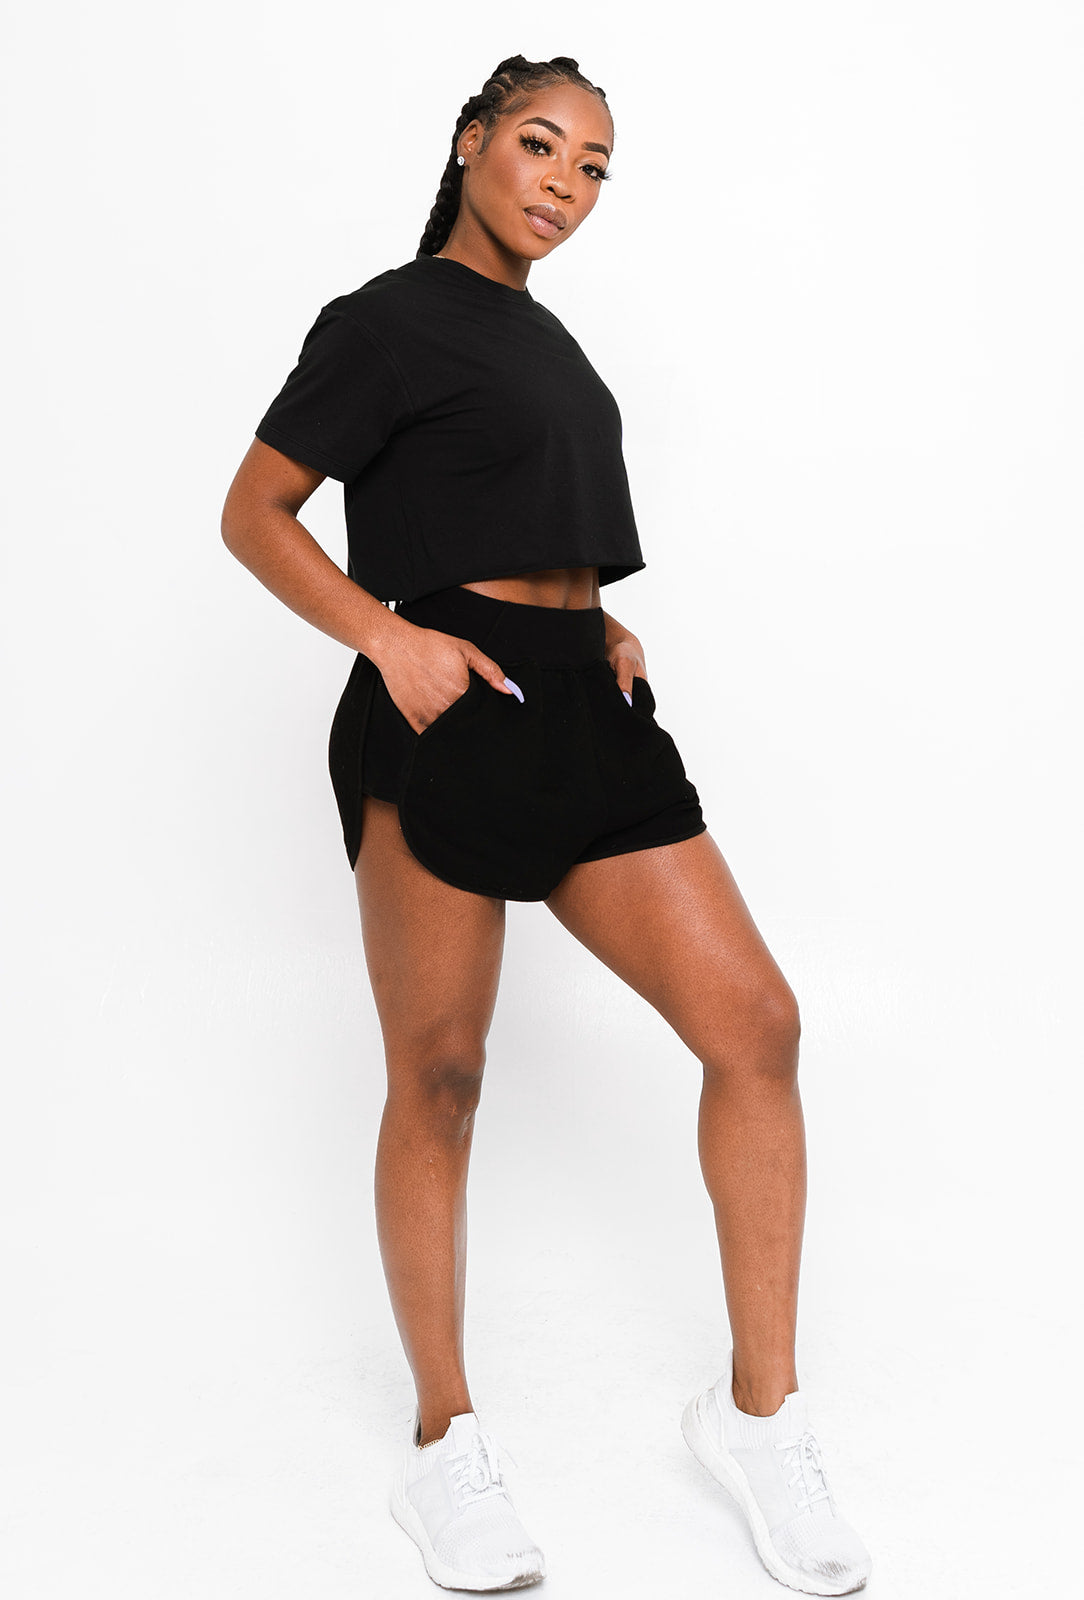 ACTA™ Daily Sweat Shorts - Black